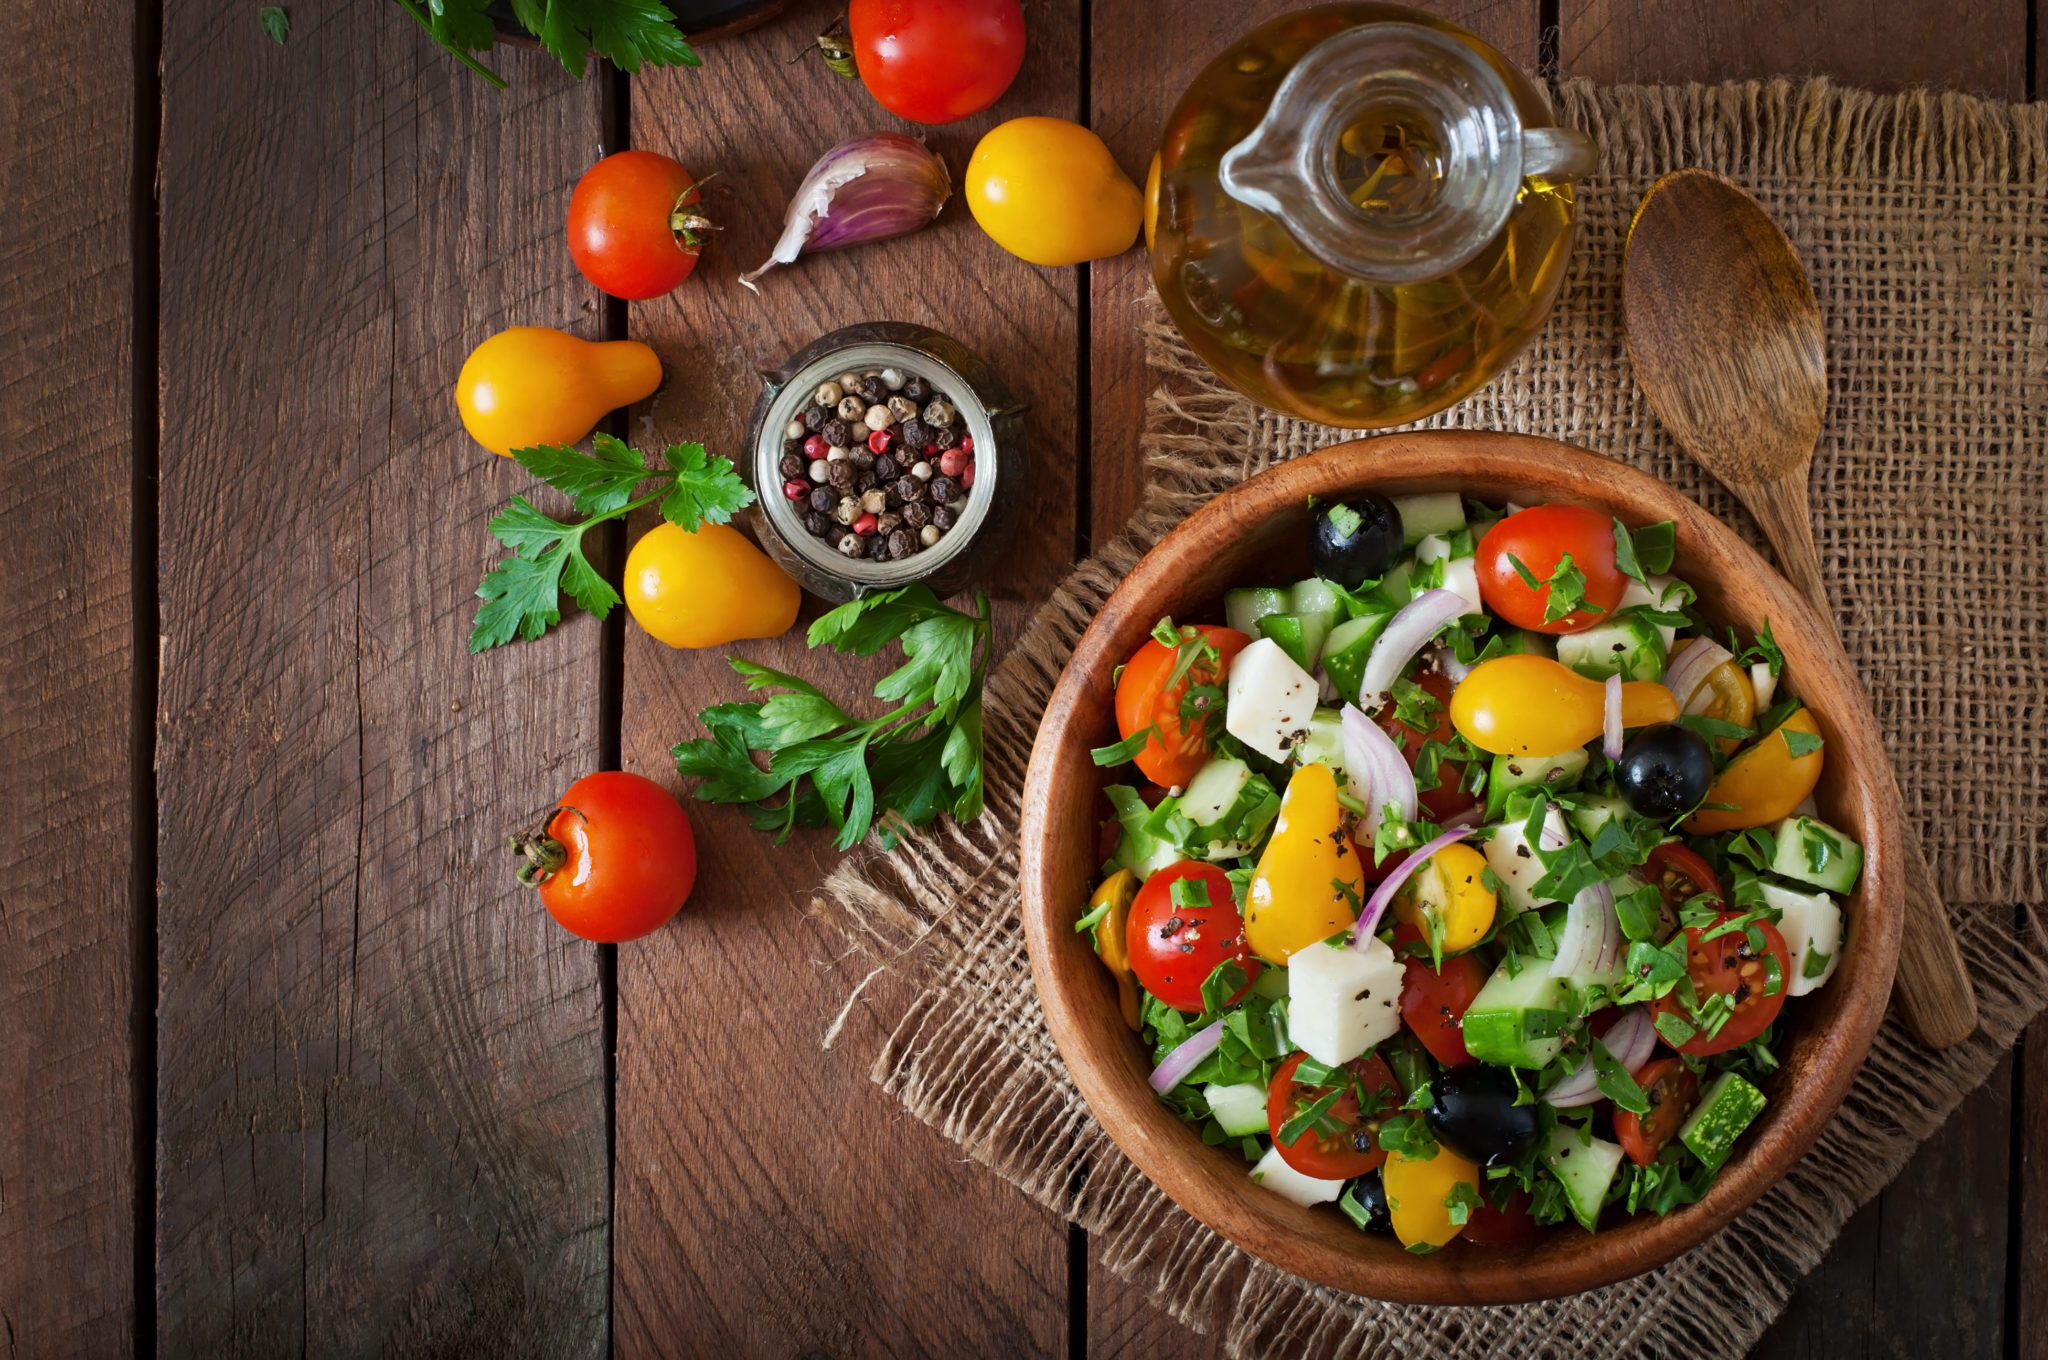 Culinary nutrition: making healthy food fun and interesting